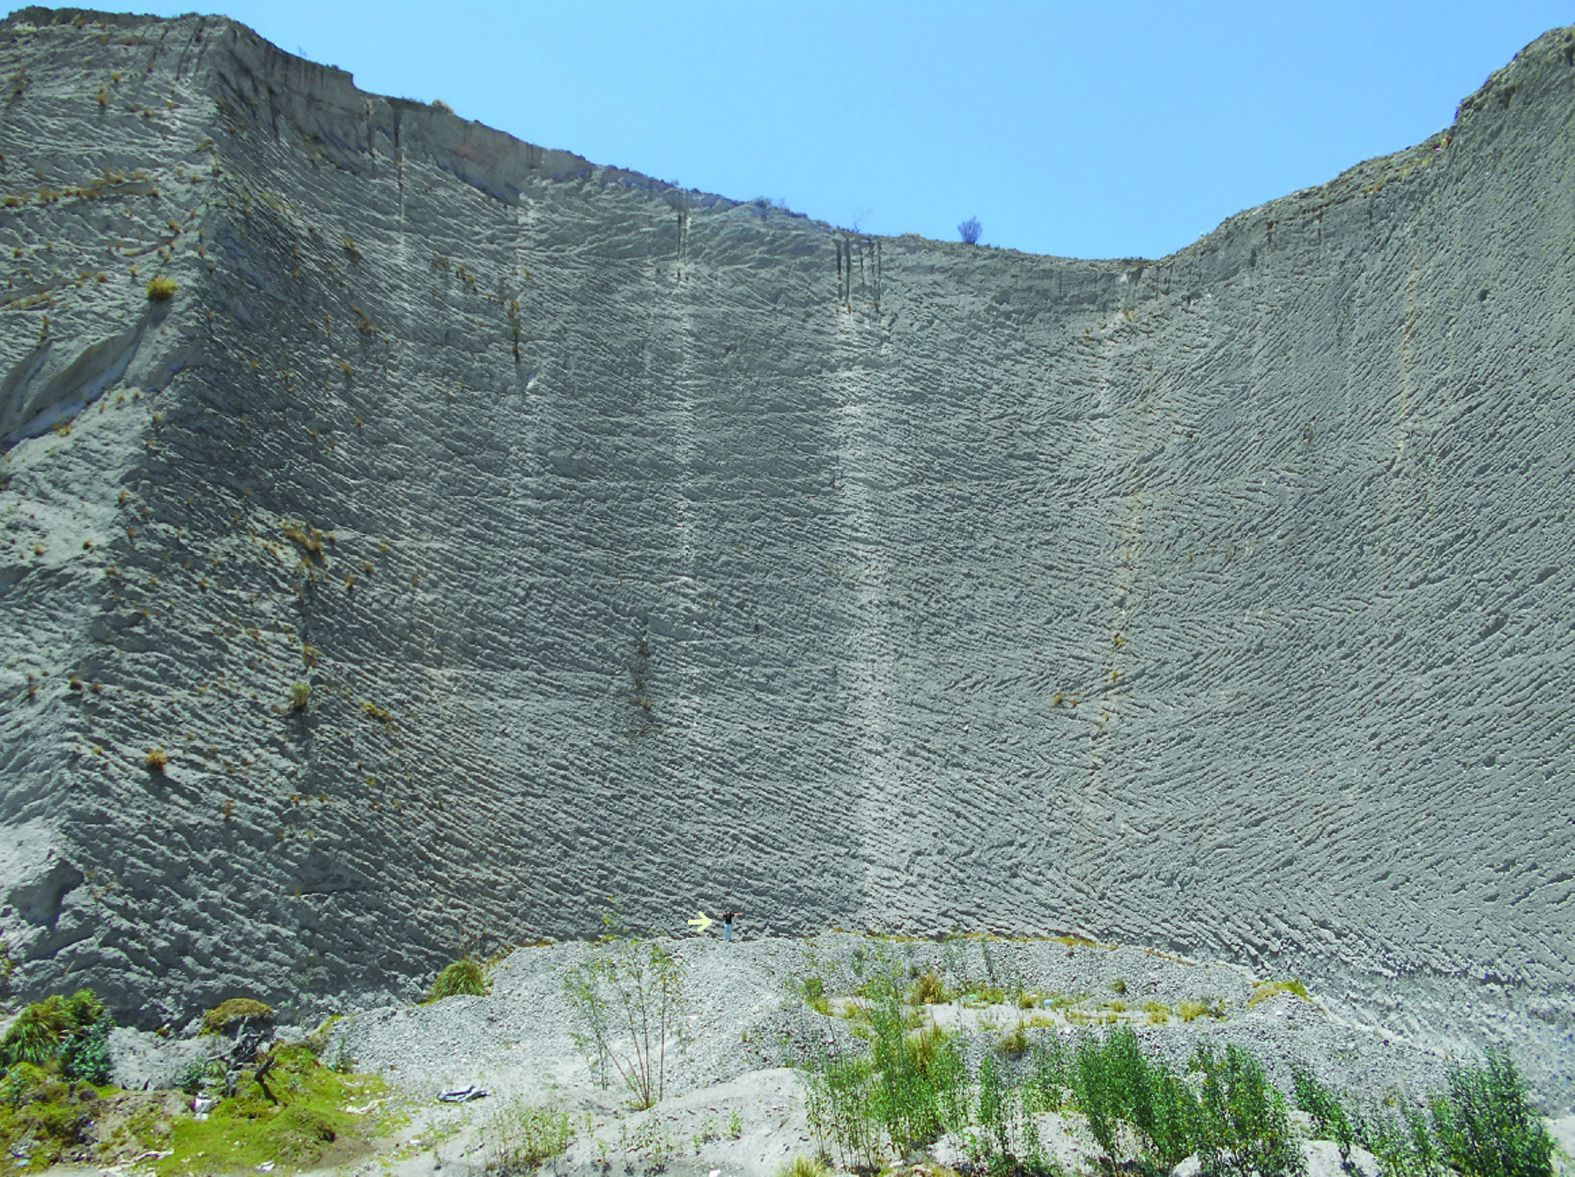 Ignimbrite deposits, up to 56 meters, from the final eruptive phase of Chalupas volcano, located 31 km SW of the caldera - the scale is given by the man (arrow at the base of the deposit) - Cortesía GEO1 - Theofilos Toulkeridis